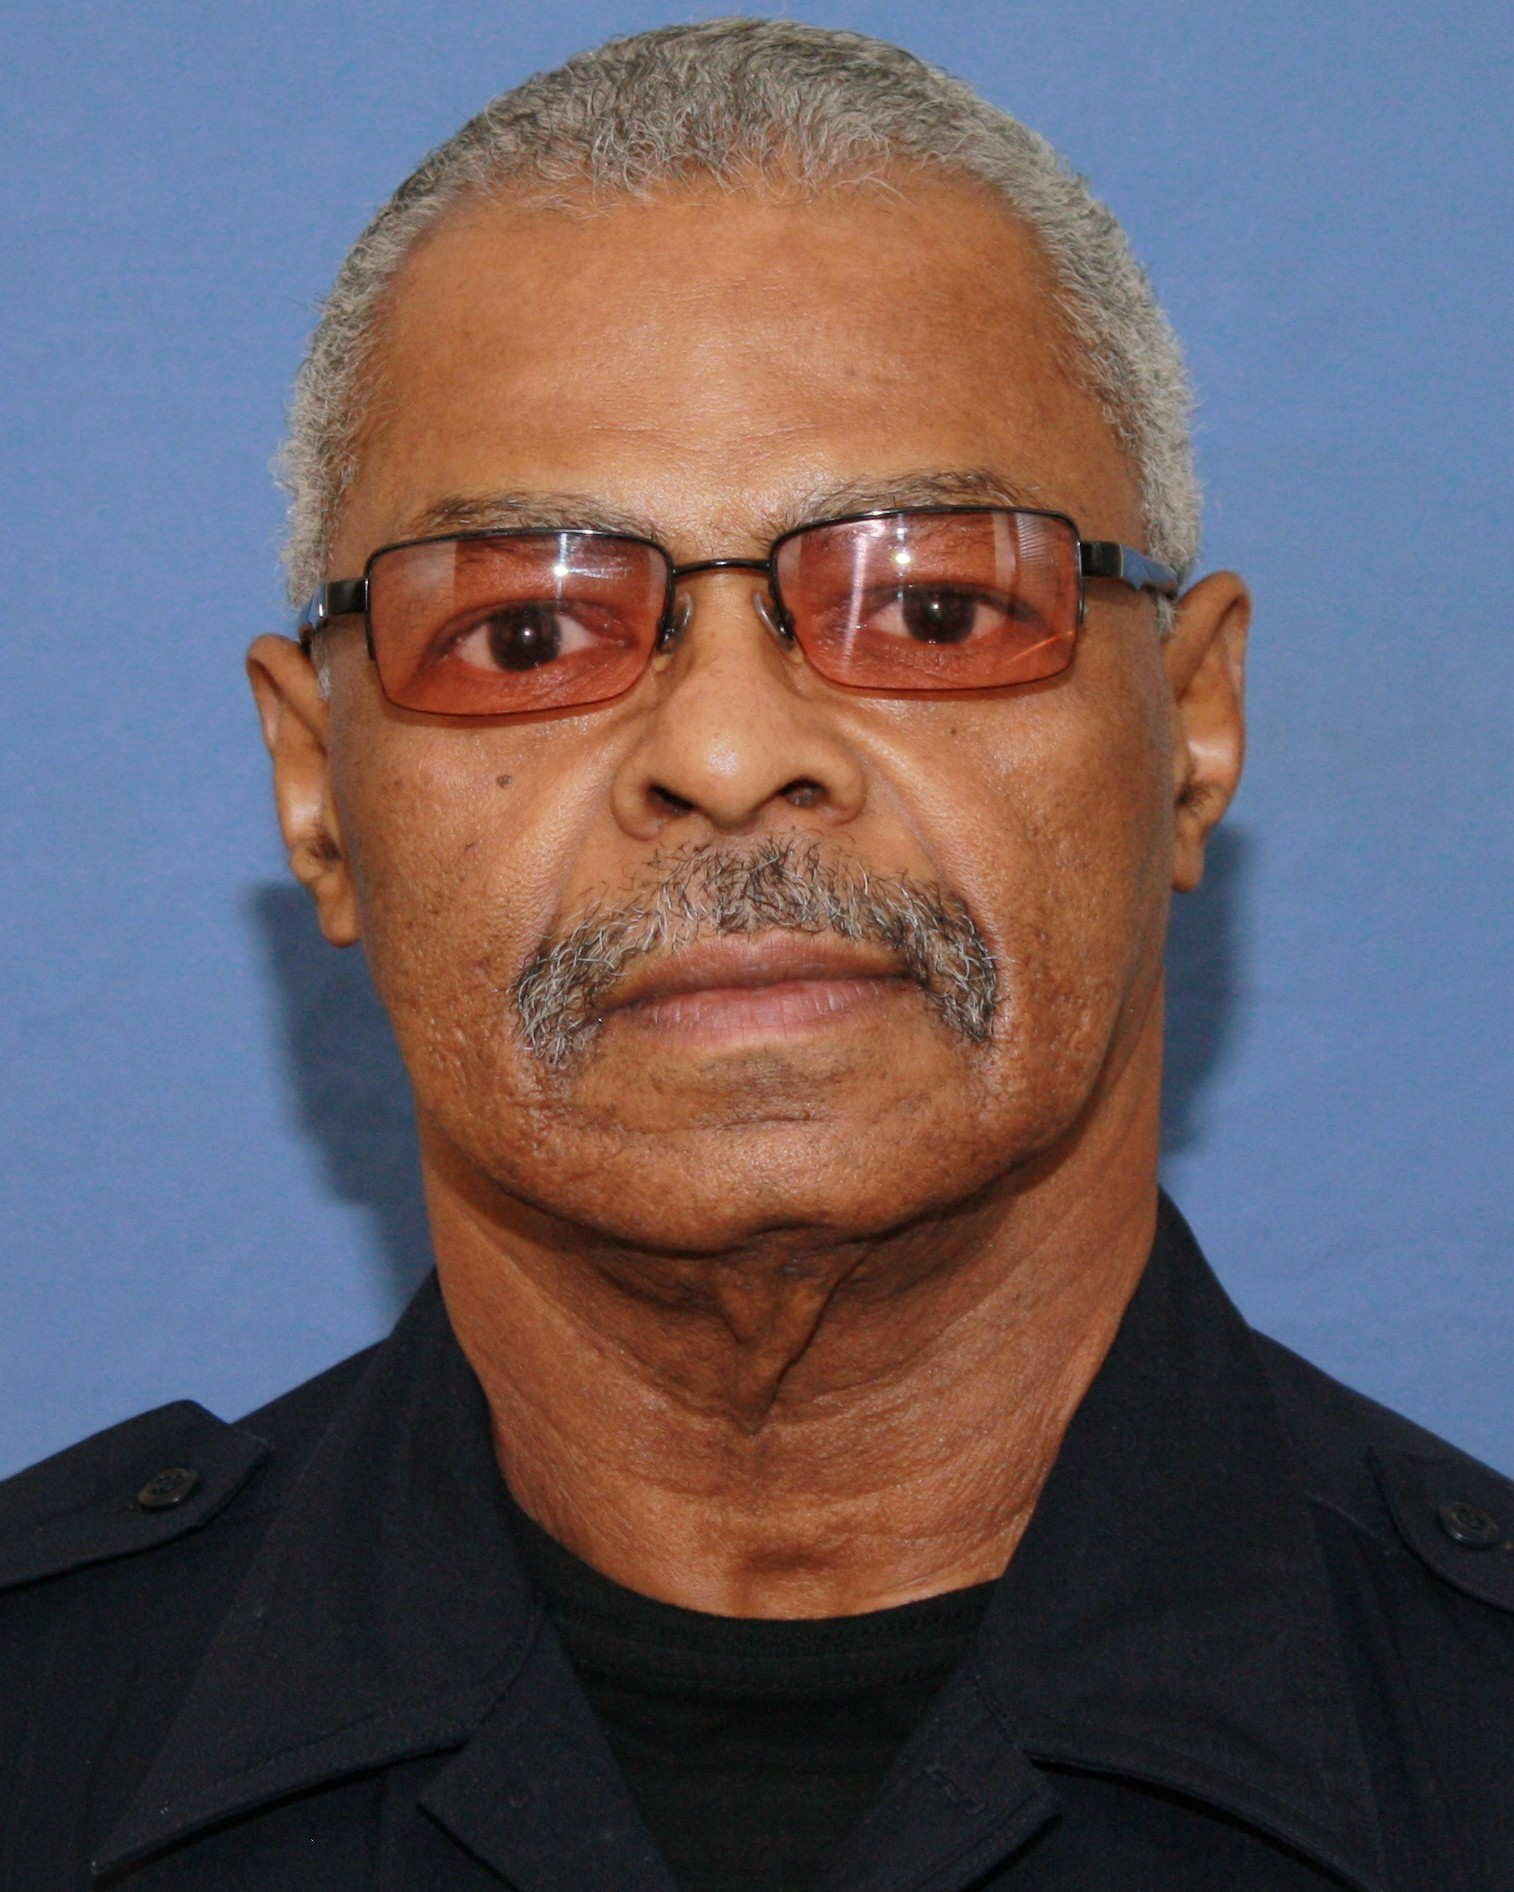 Police Officer Ronald A. Leisure | United States Department of Veterans Affairs Police Services, U.S. Government